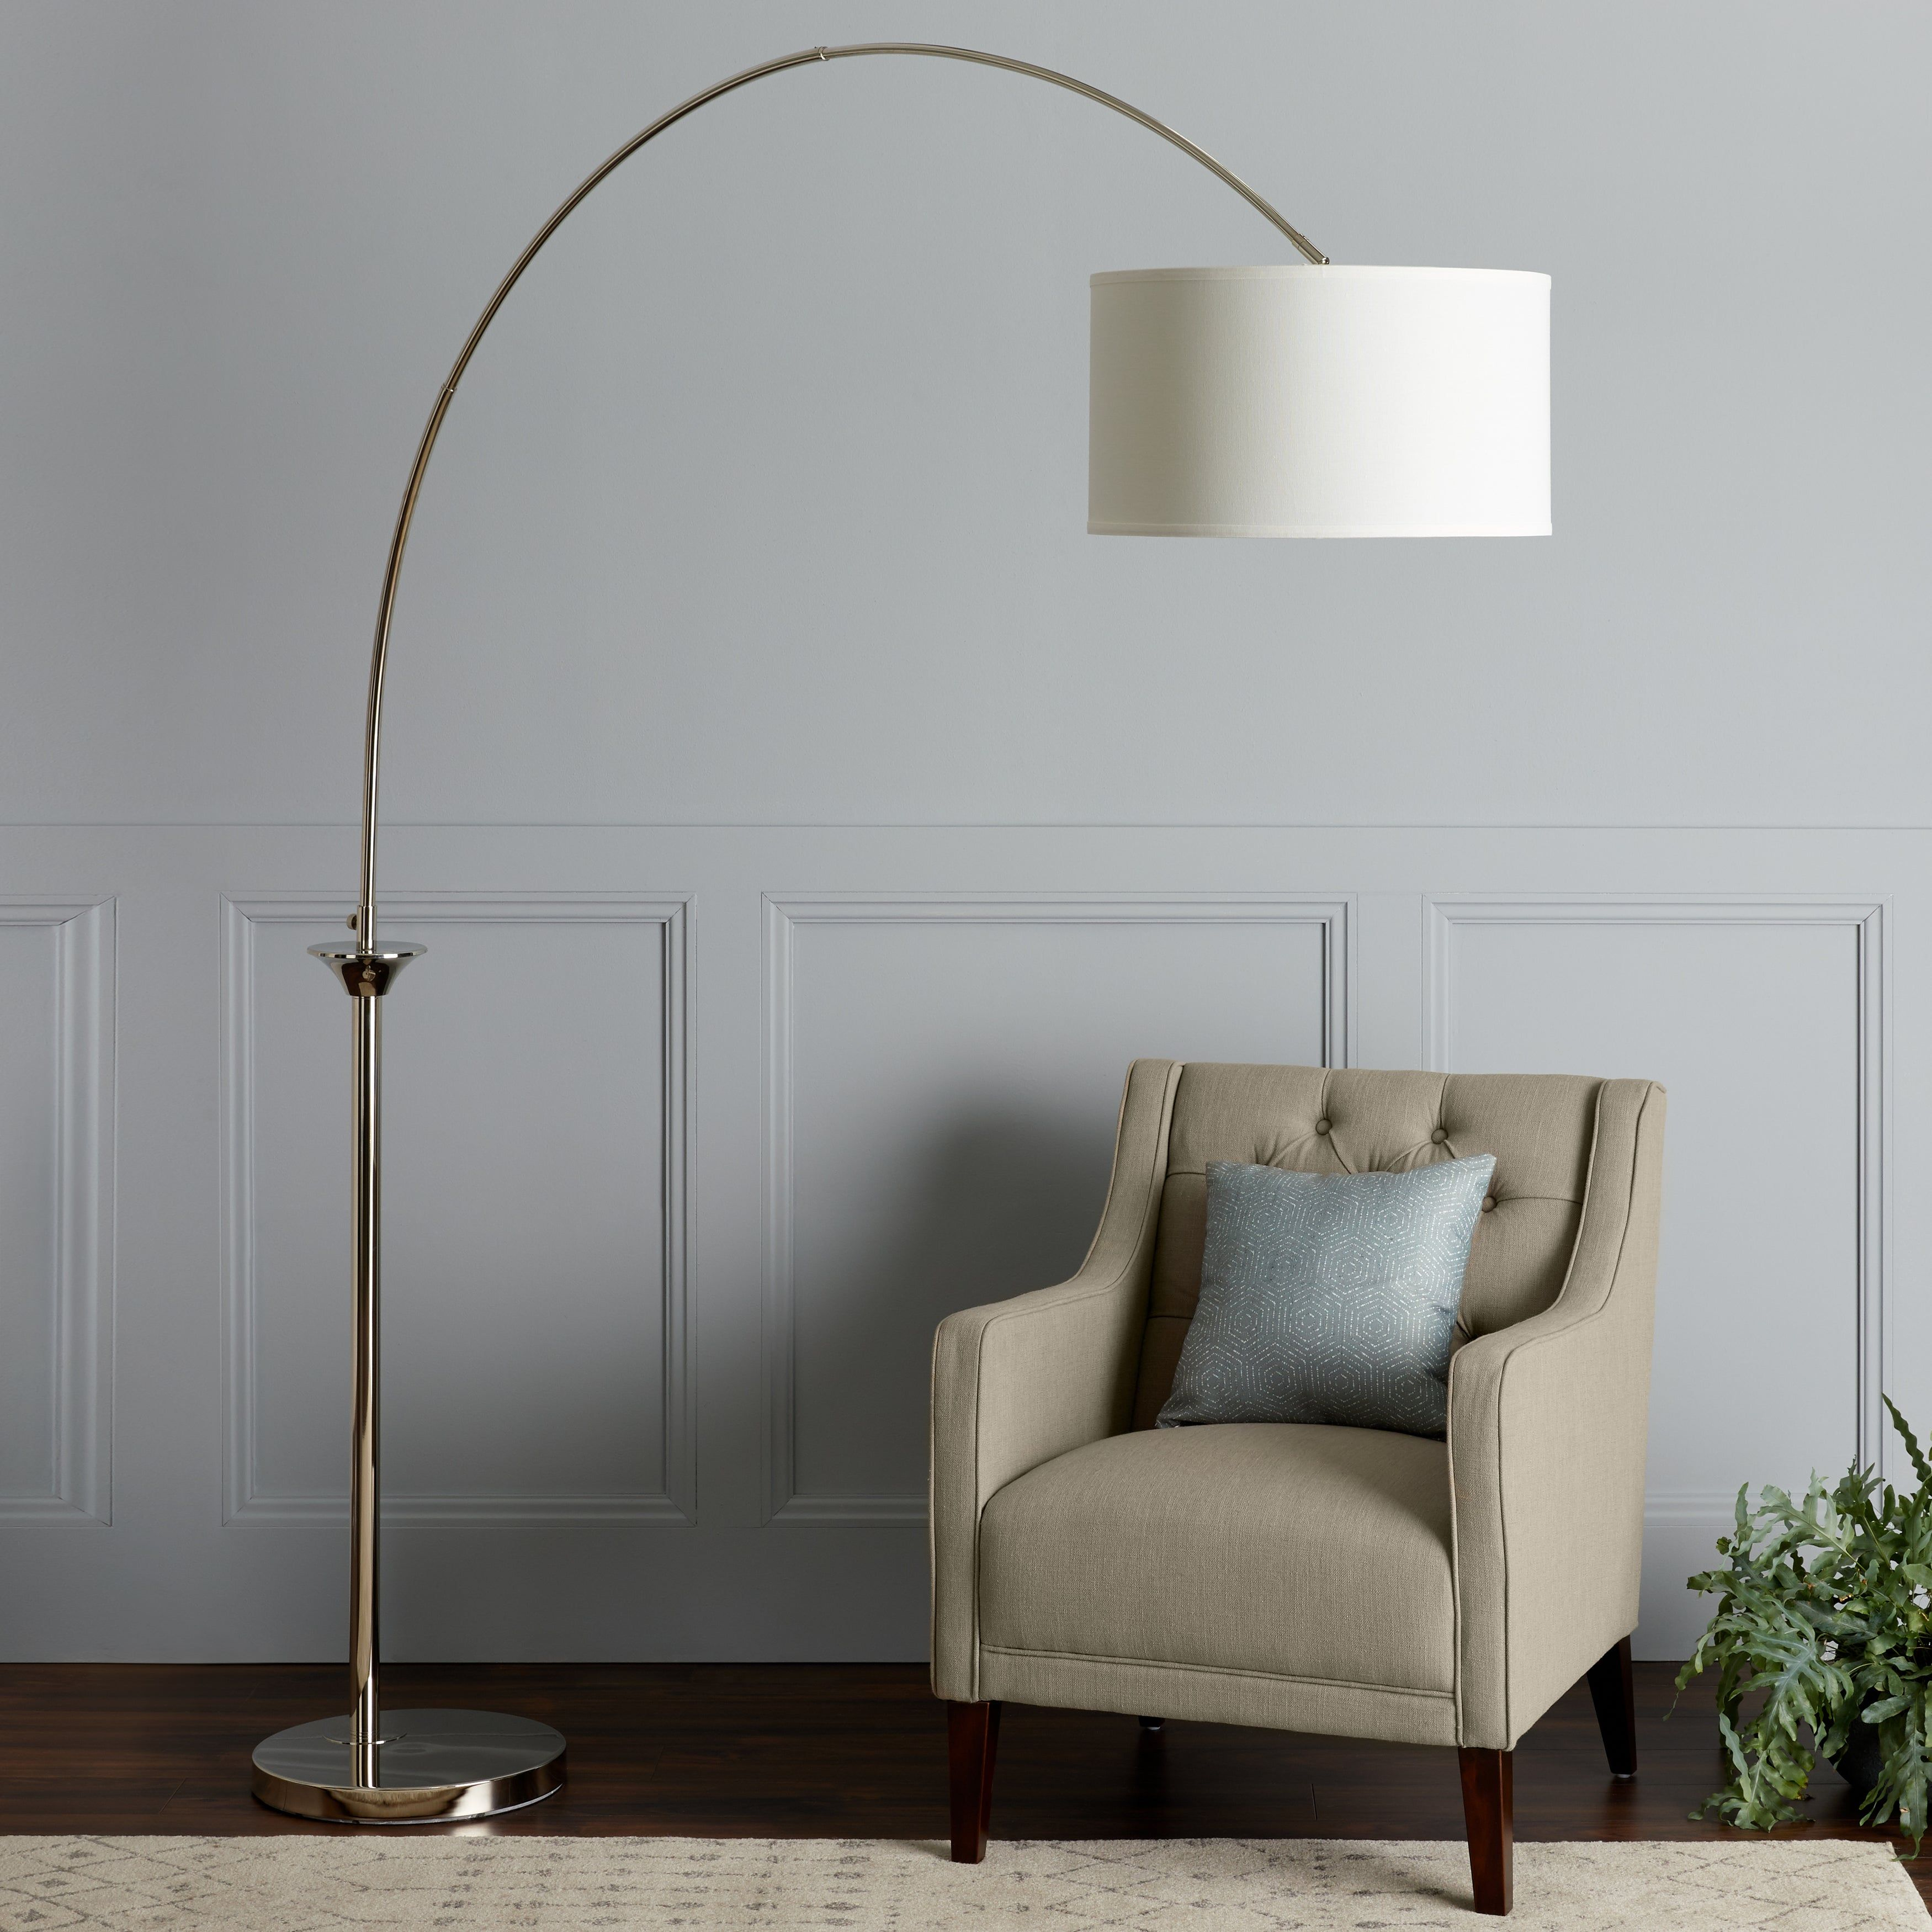 Awesome Living Room Floor Lamps Design hixpce.info